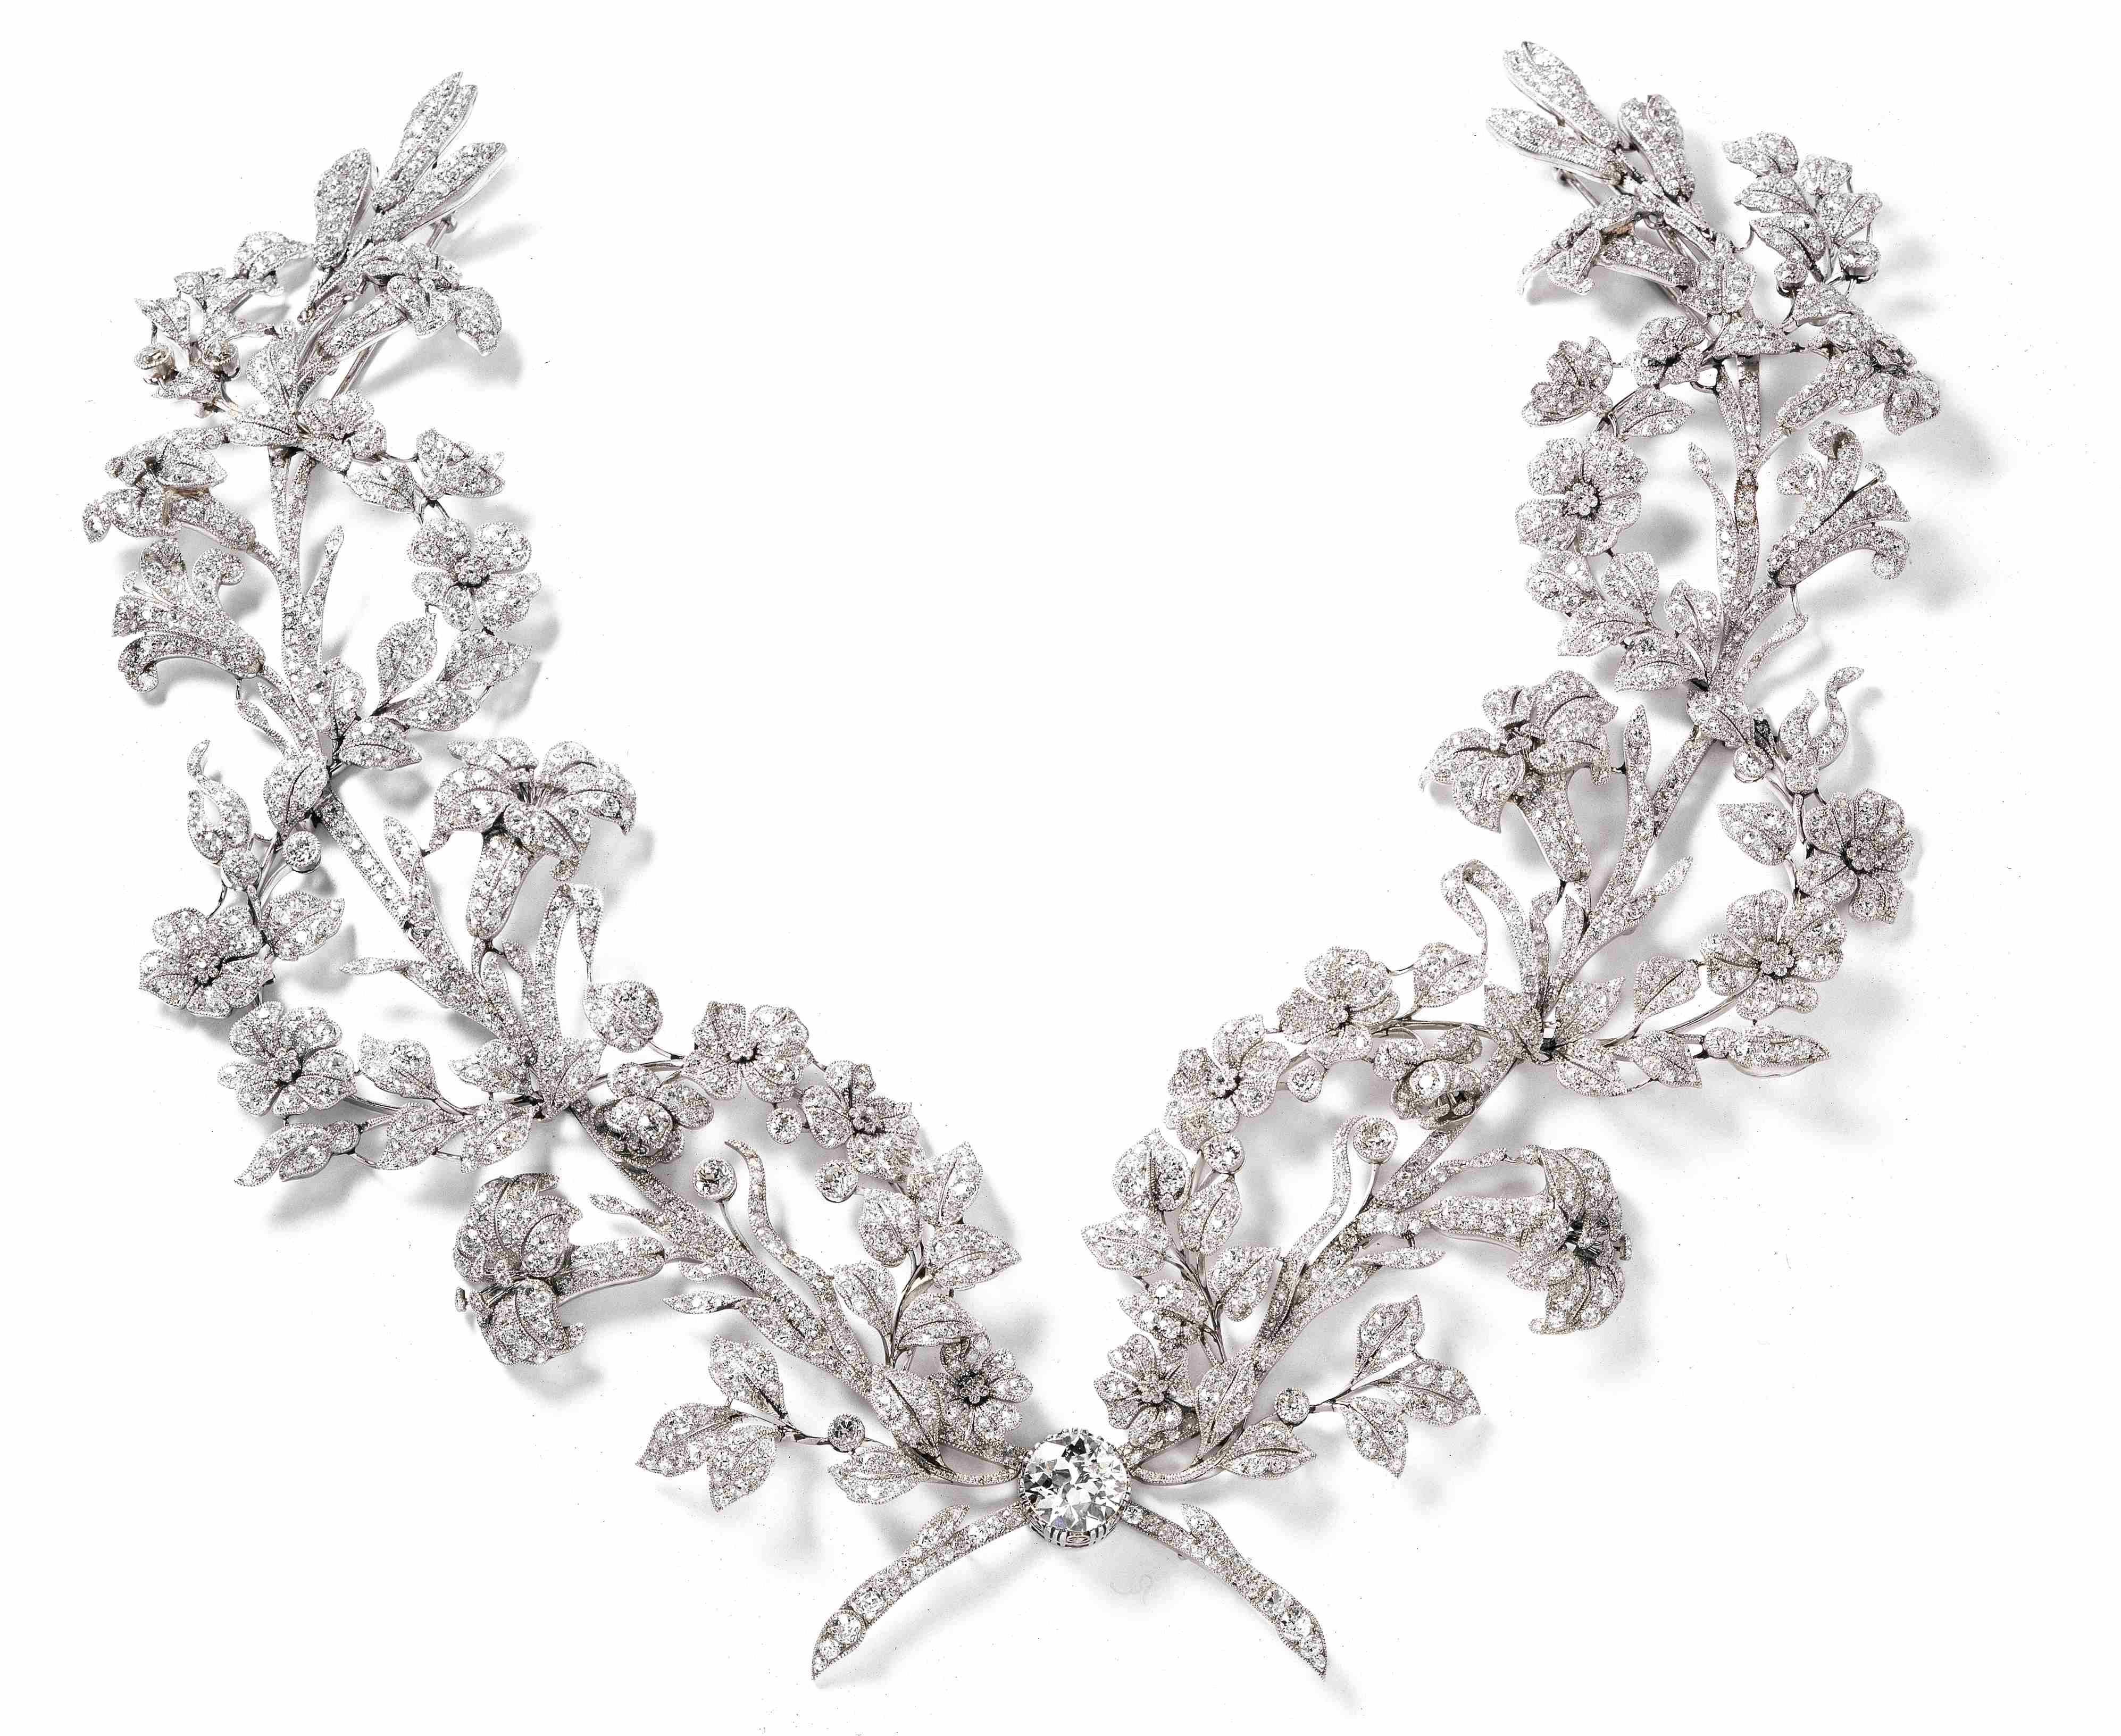 122308020608 as well Ultra Femme Vintage Fine Jewelry further Silver Silver Woman Dodo A88655 moreover Unique Vintage Finds Feat Bulgari likewise Editors Picks Fine Jewelry 4. on cartier santos women